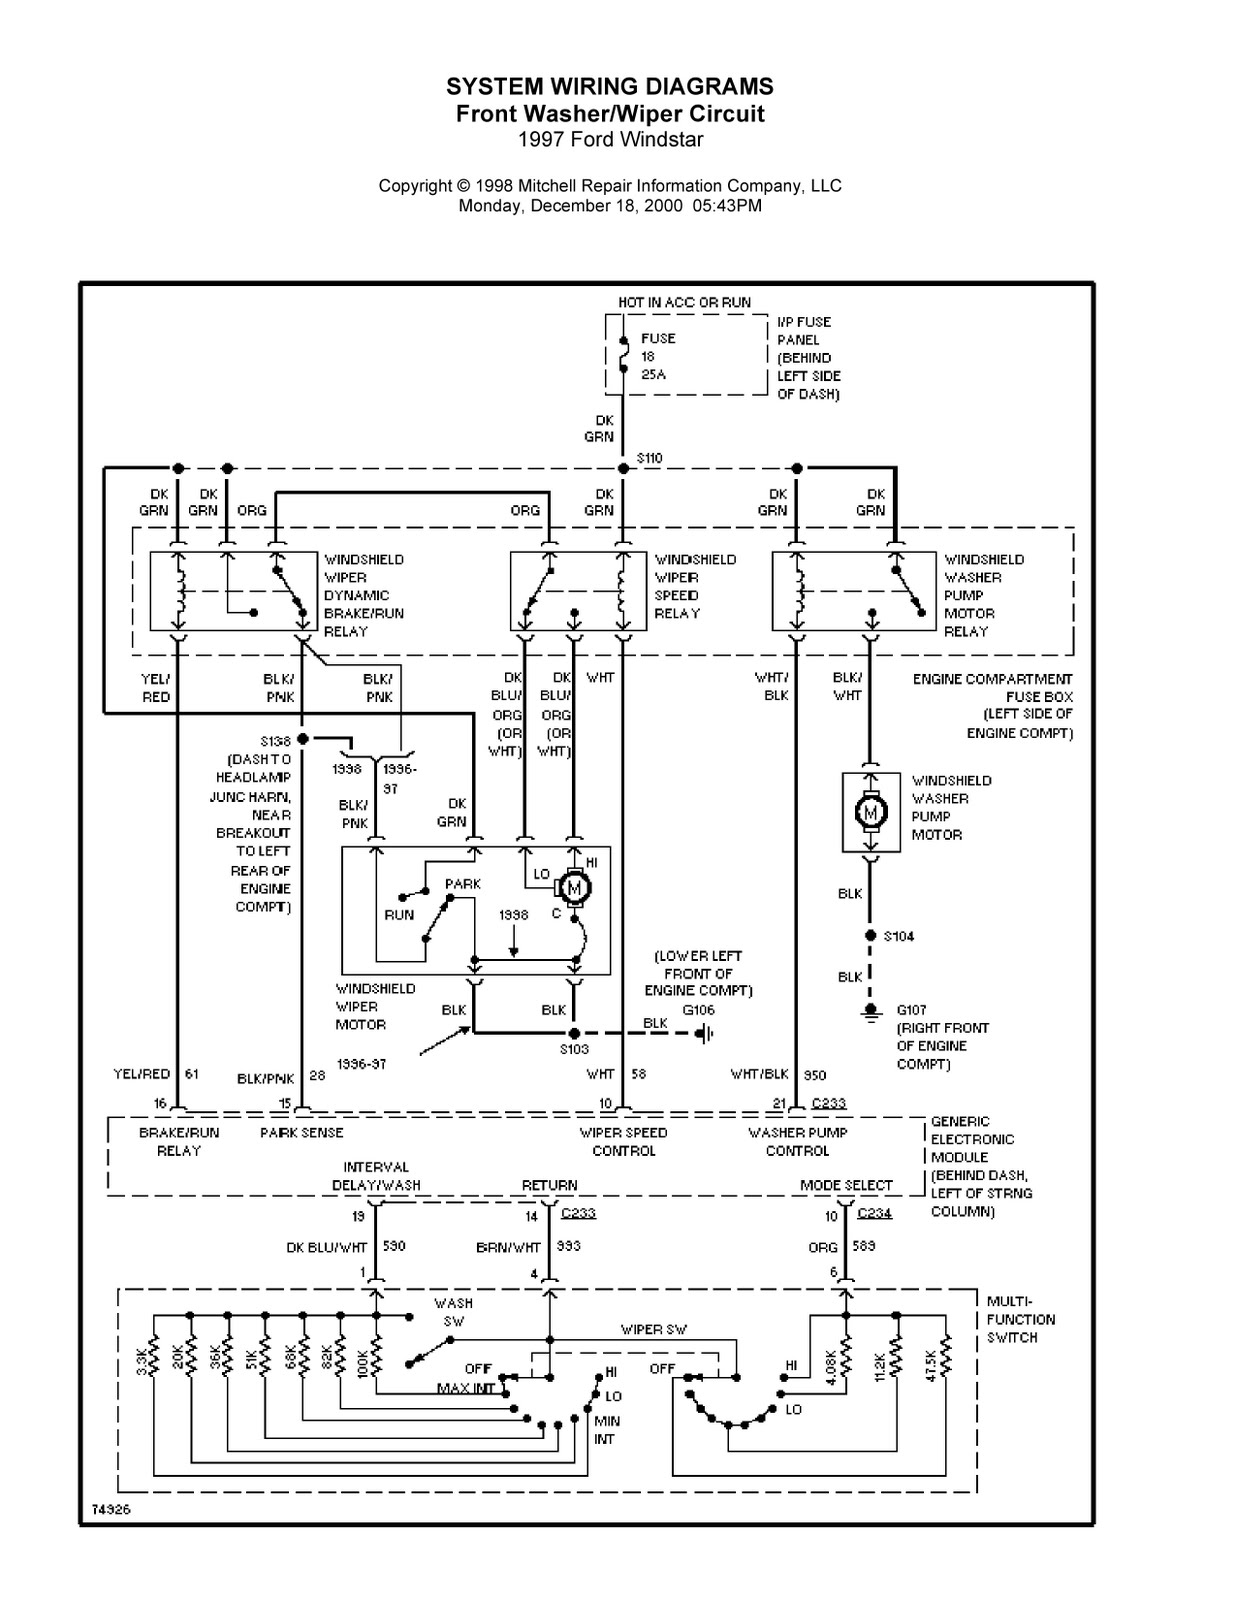 1997 Ford Windstar Complete System Wiring Diagrams Wiring